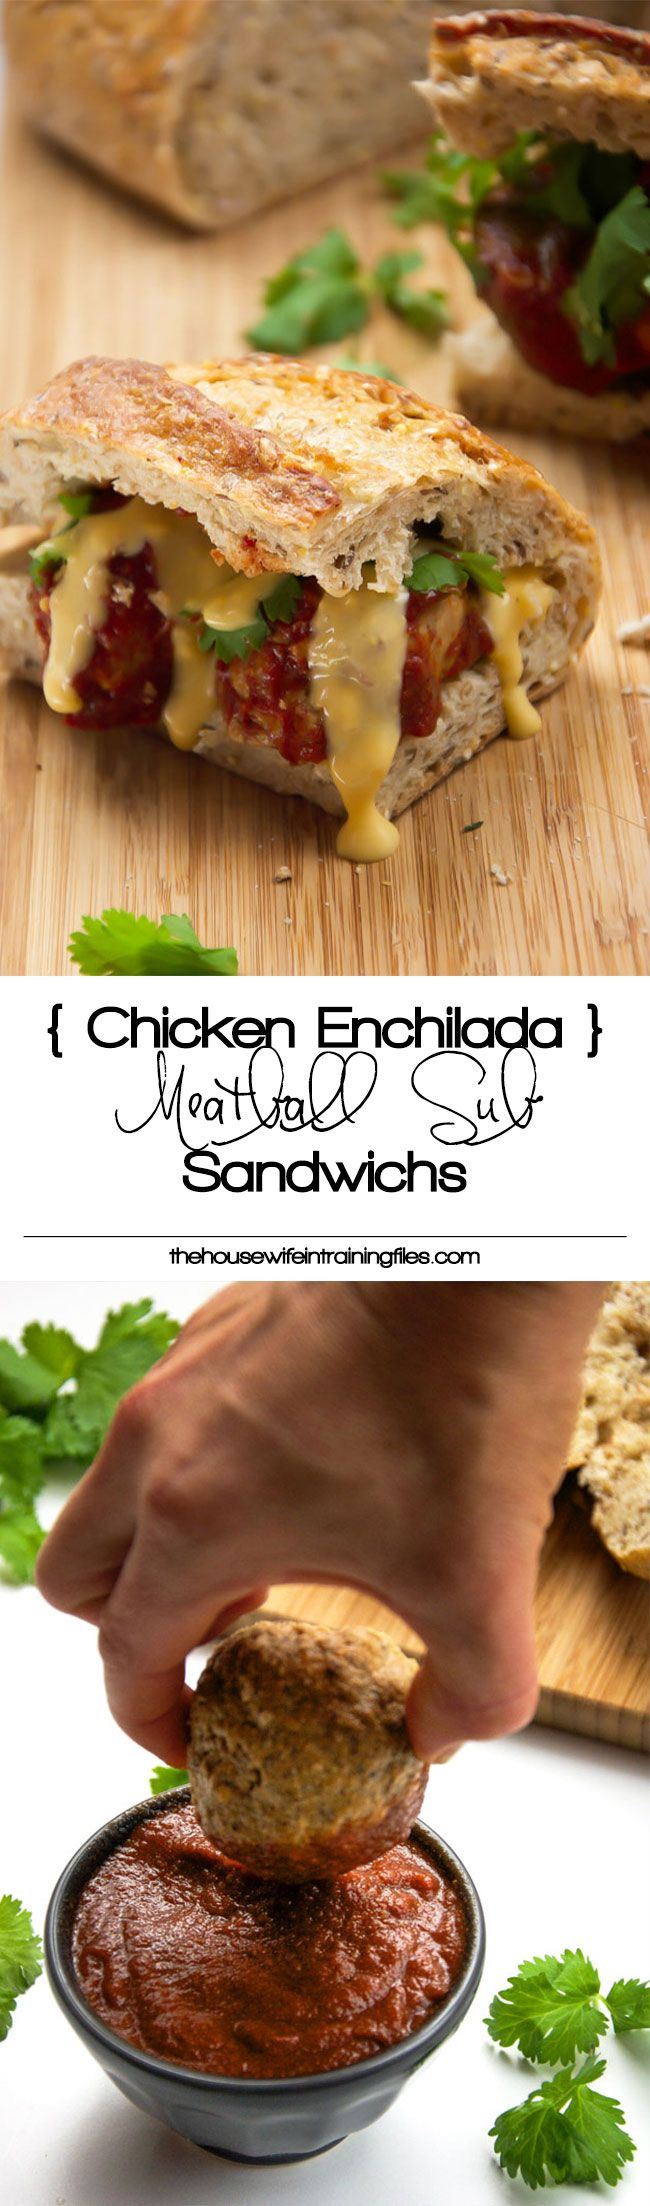 Enchilada Chicken Meatball Sub Sandwiches madeover with lean, ground chicken, enchilada sauce, multigrain rolls and dipped into a skinny queso dip! And they are cooked in the slow cooker to make dinner a breeze!